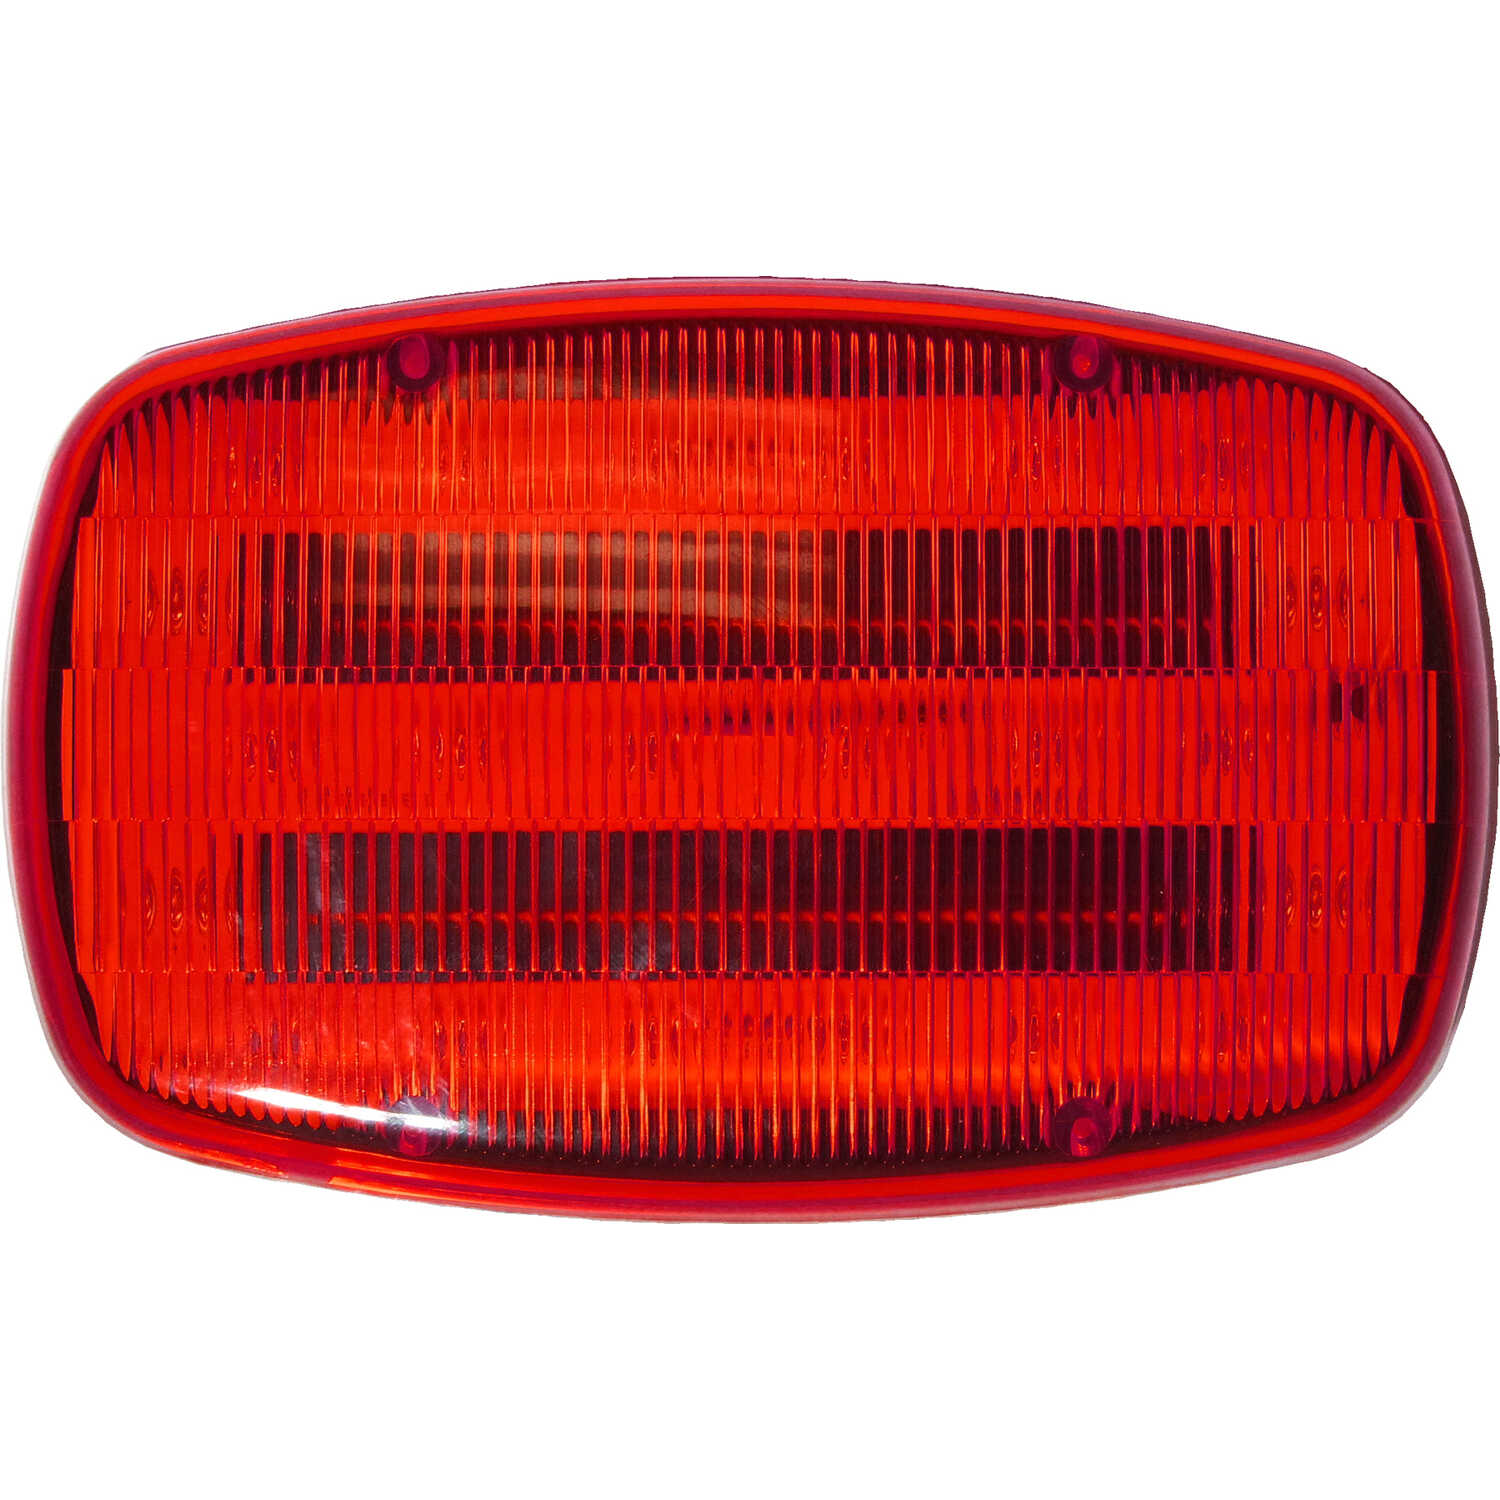 Peterson  Red  Operated Flashing Hazard Lights